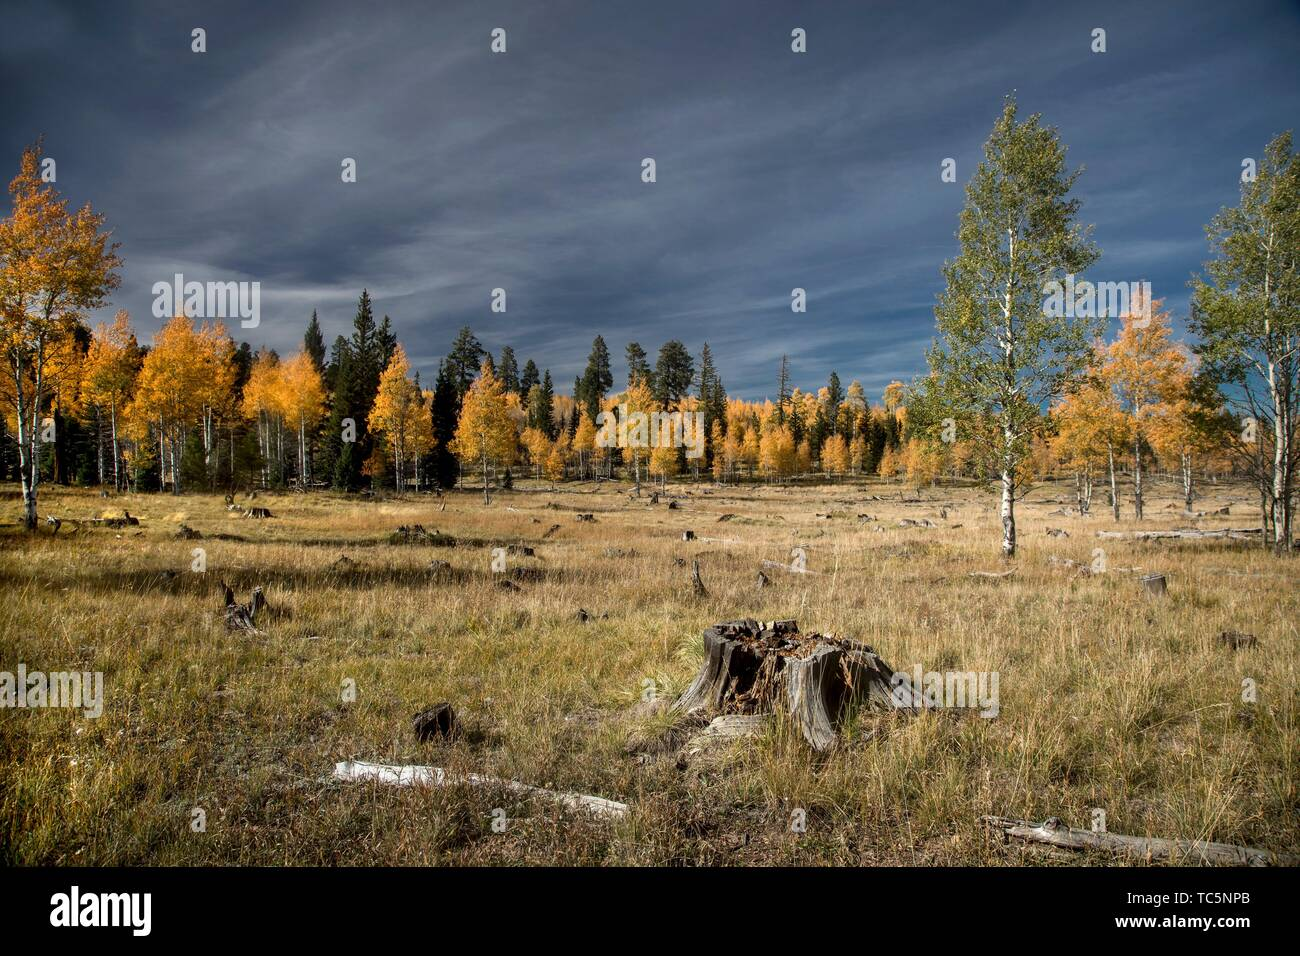 Fall colors have arrived to the Kaibab National Forest in Northern Arizona. - Stock Image